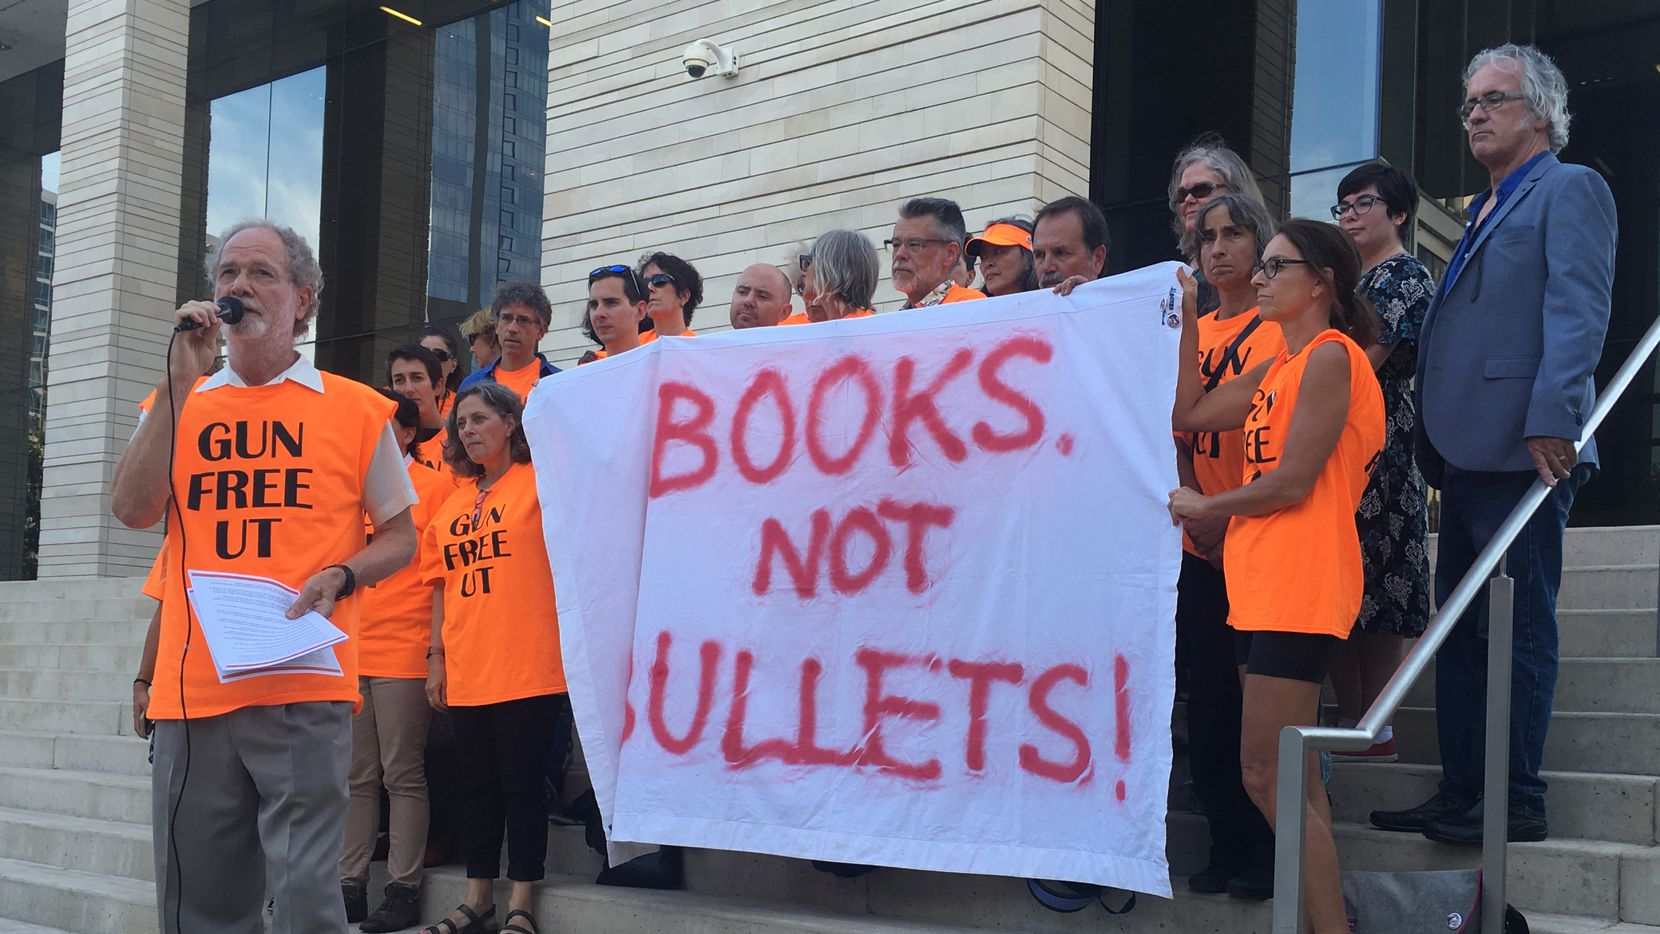 Professors and students from the University of Texas at Austin stood outside the U.S. District Court for the Western District of Texas on Thursday. Three UT-Austin professors are suing to temporarily block implementation of the state's brand-new campus carry law, which allows licensed gun owners to carry concealed handguns into most campus buildings.